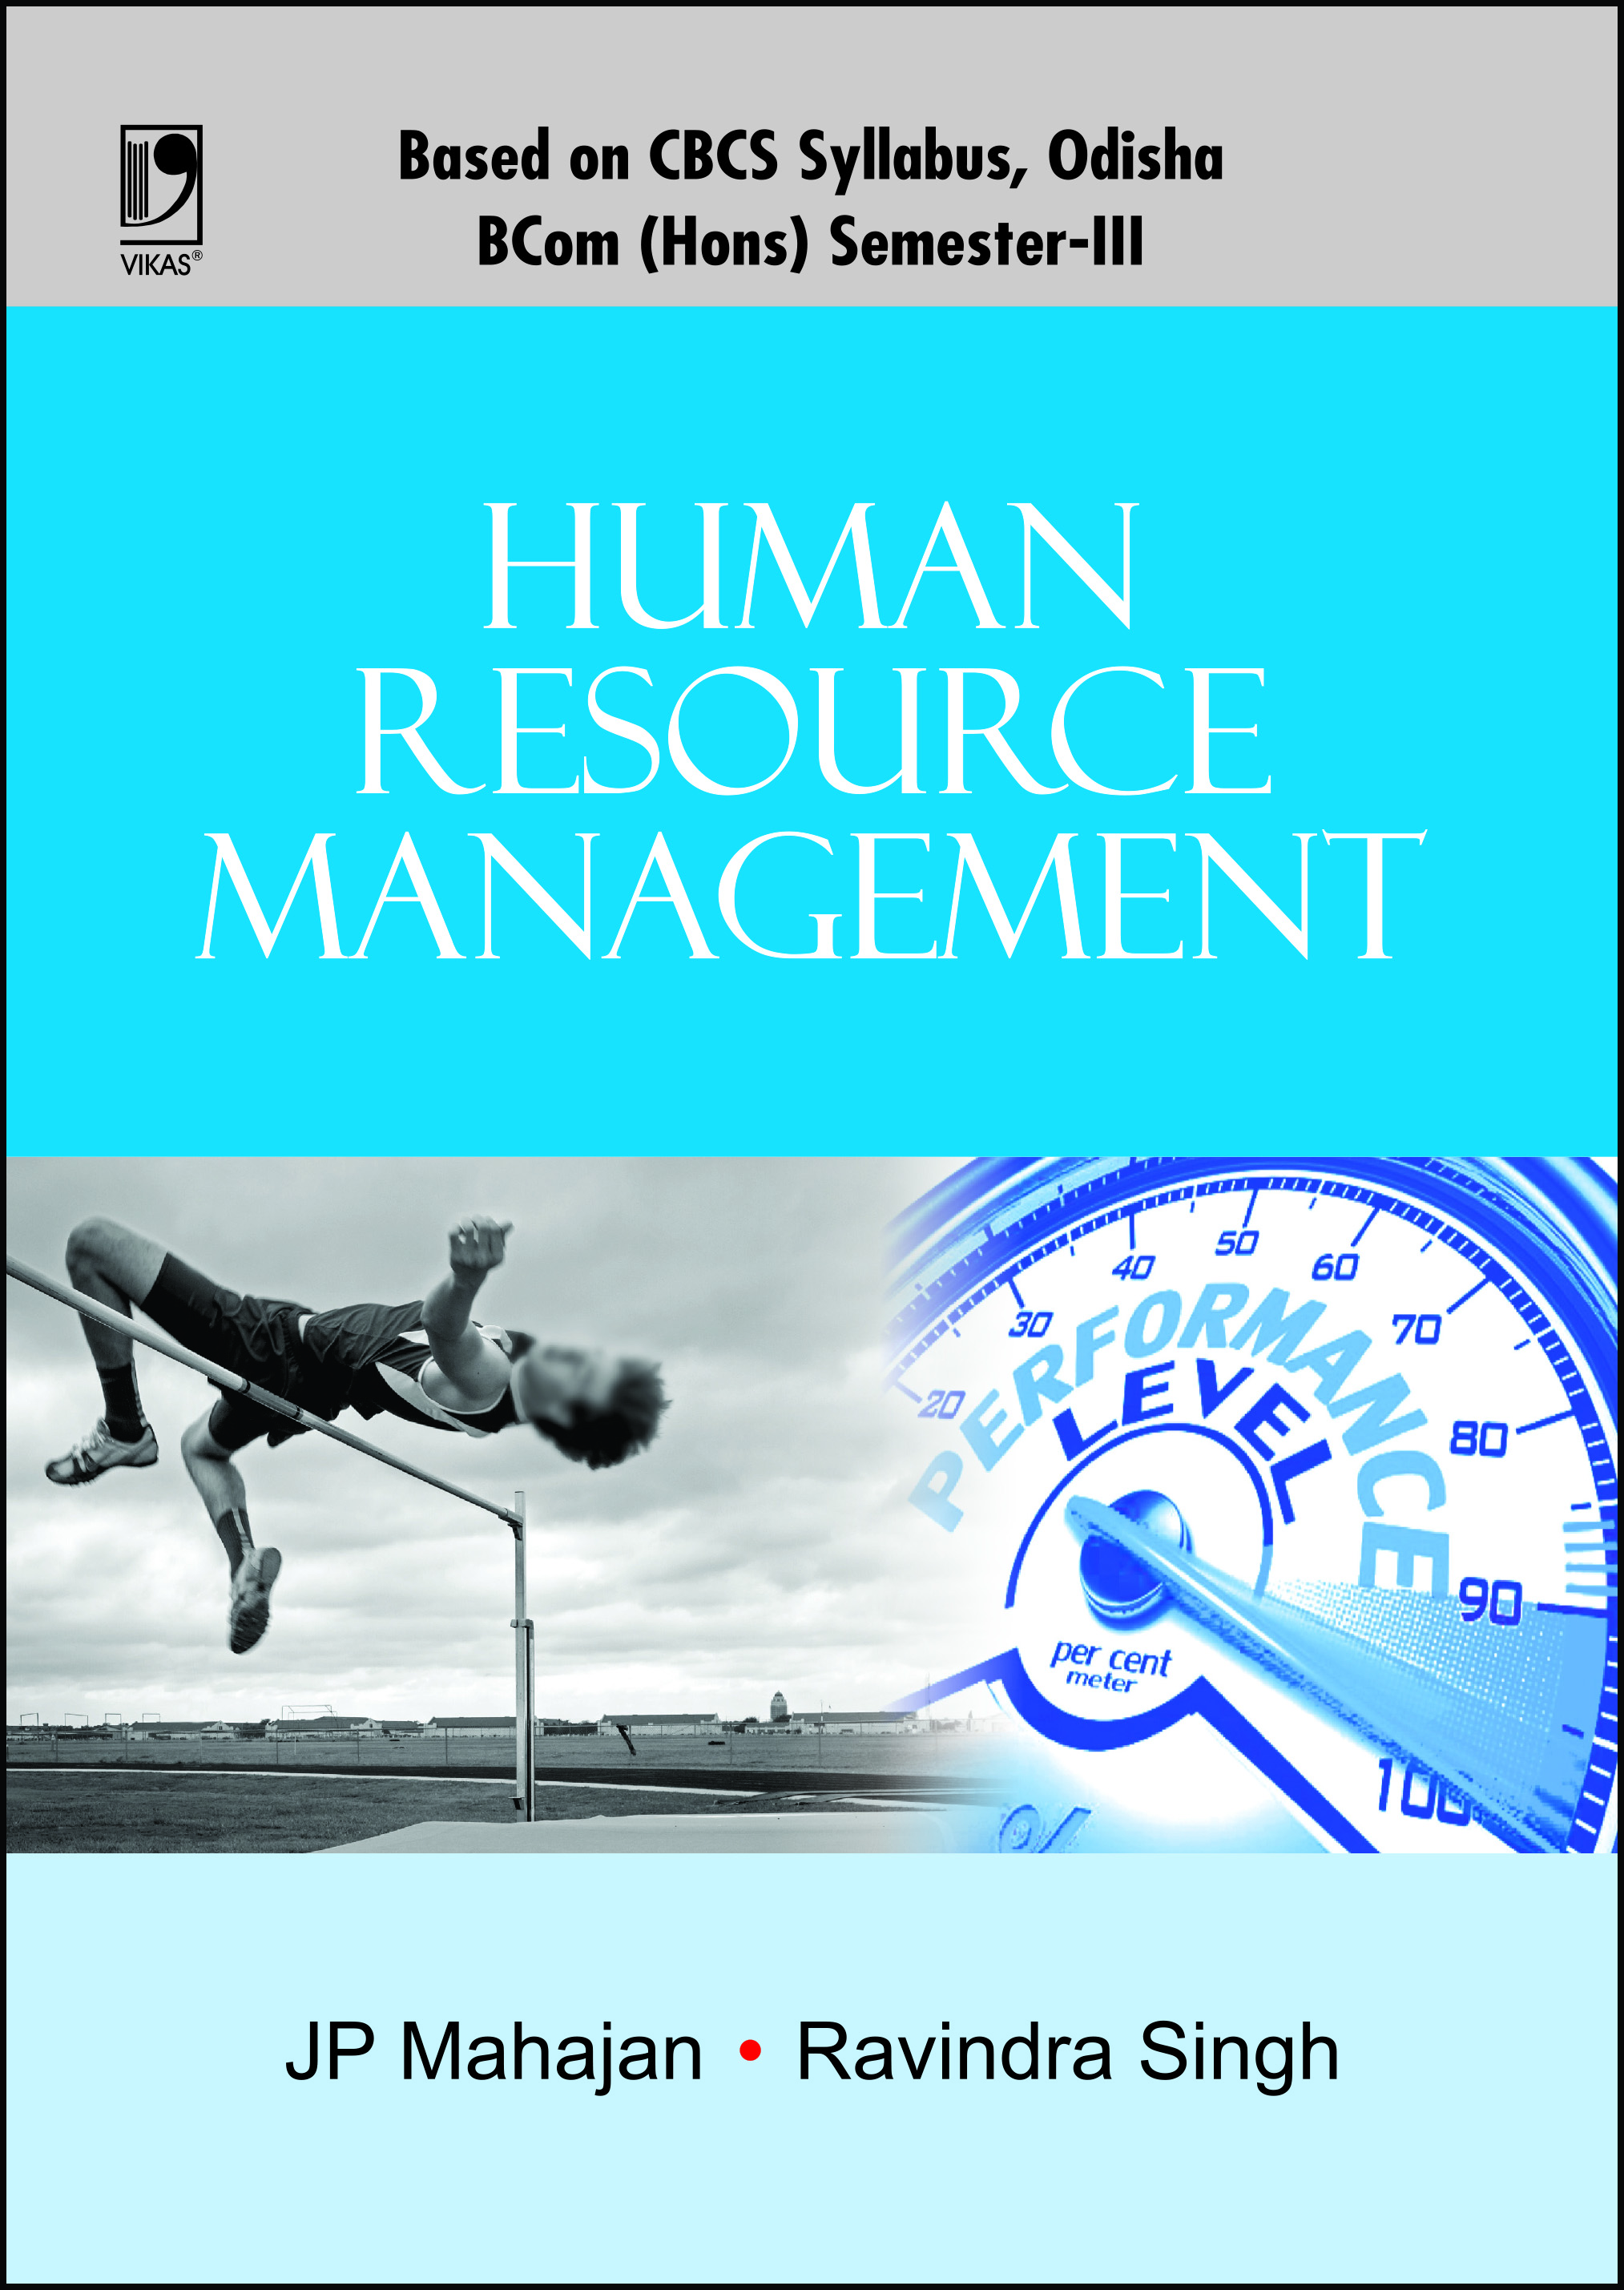 Human Resource Management (For B.Com. (Hons.) 3rd Semester, Odisha Universities) by  J P Mahajan